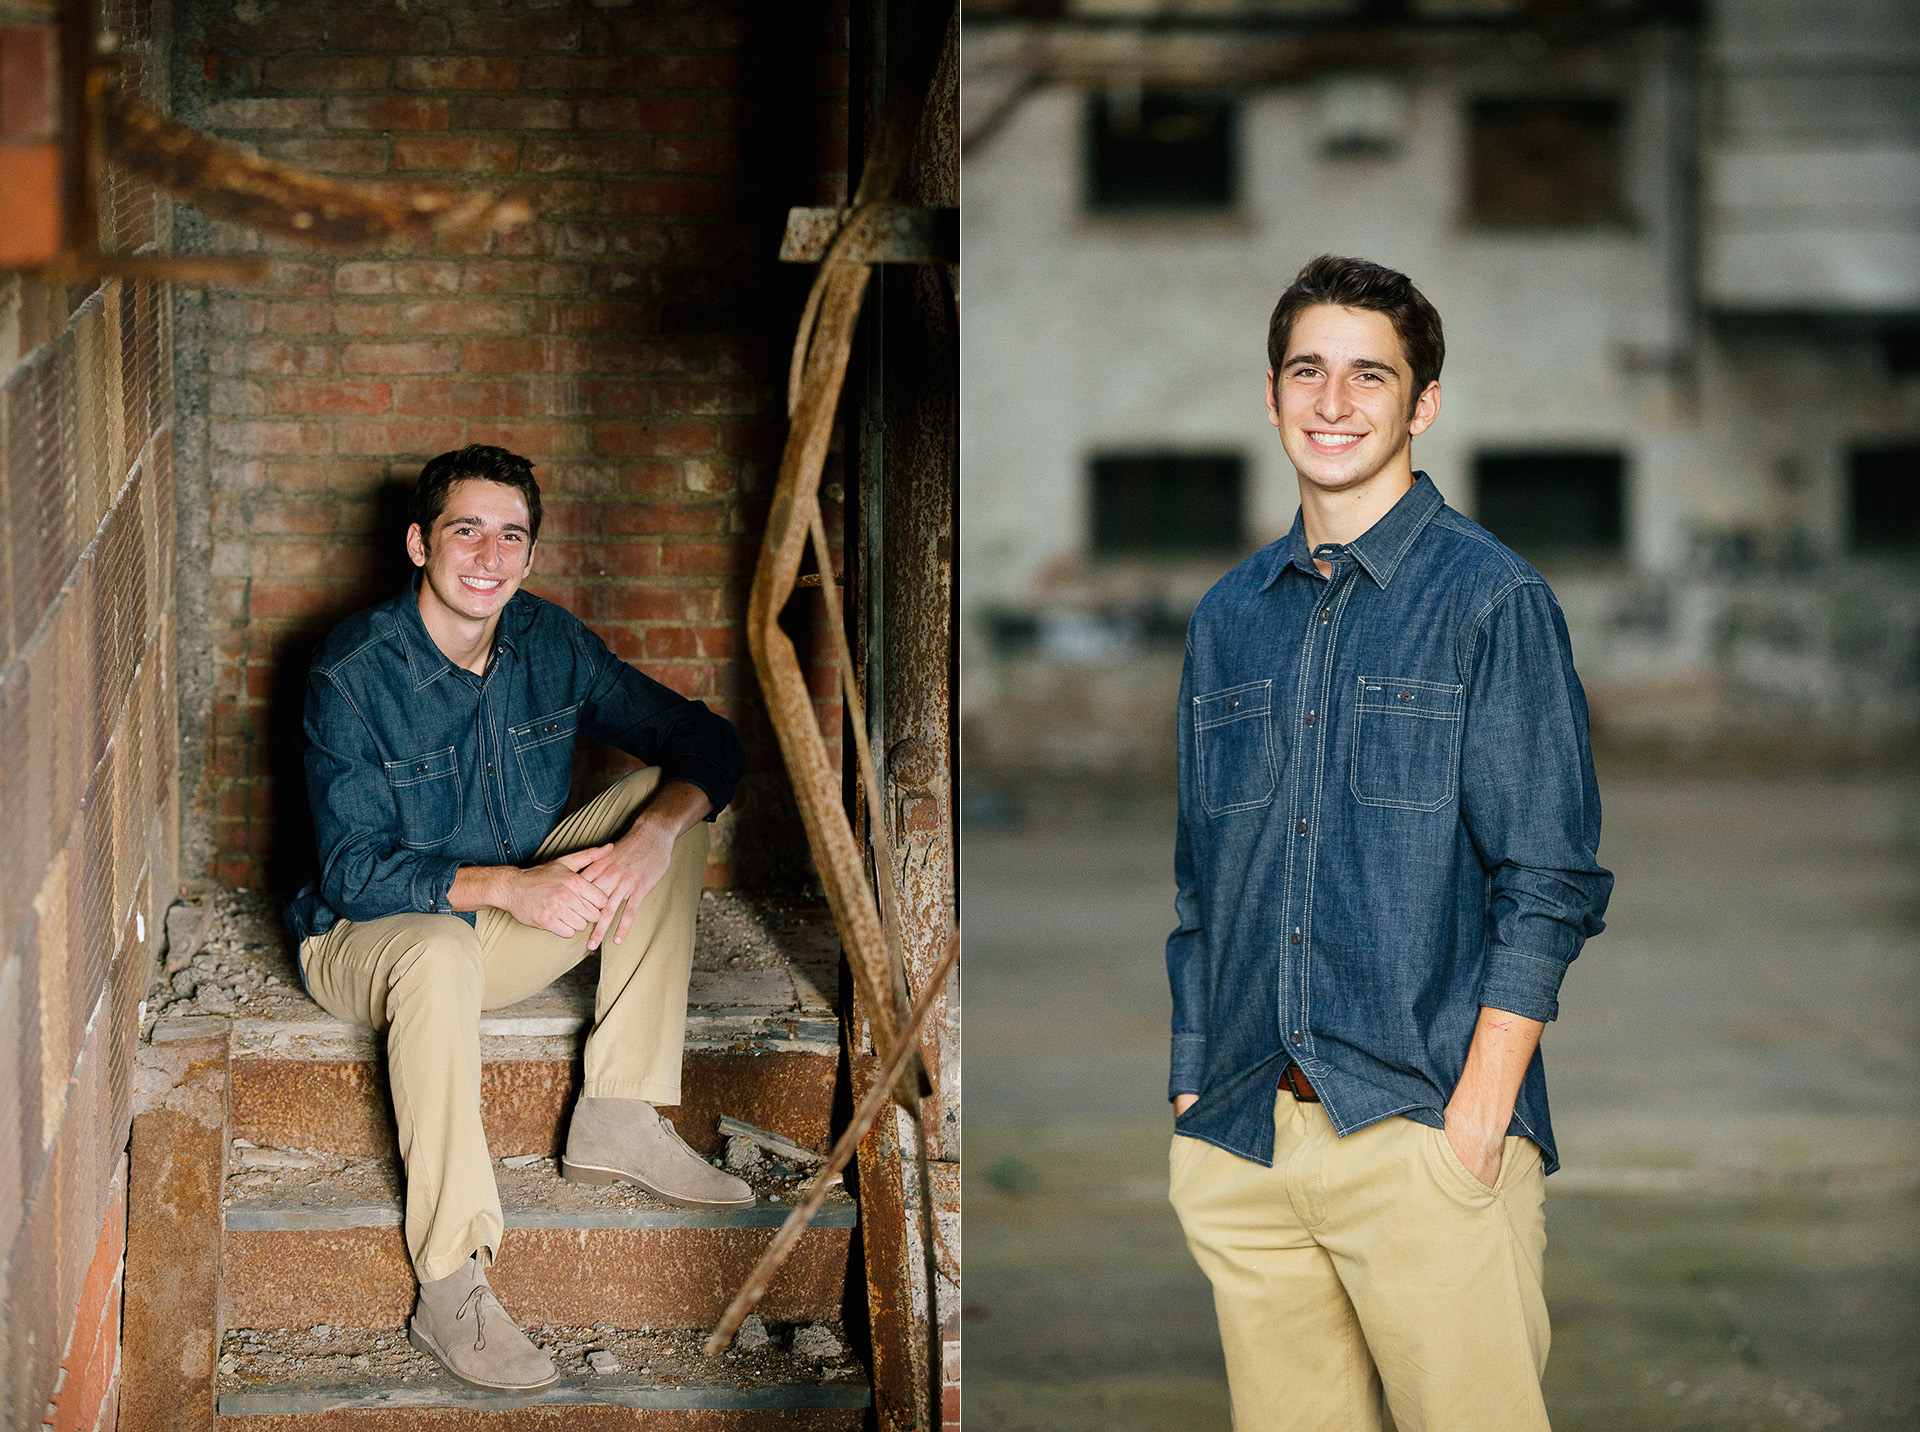 Poland High School Senior Portraits 13.jpg